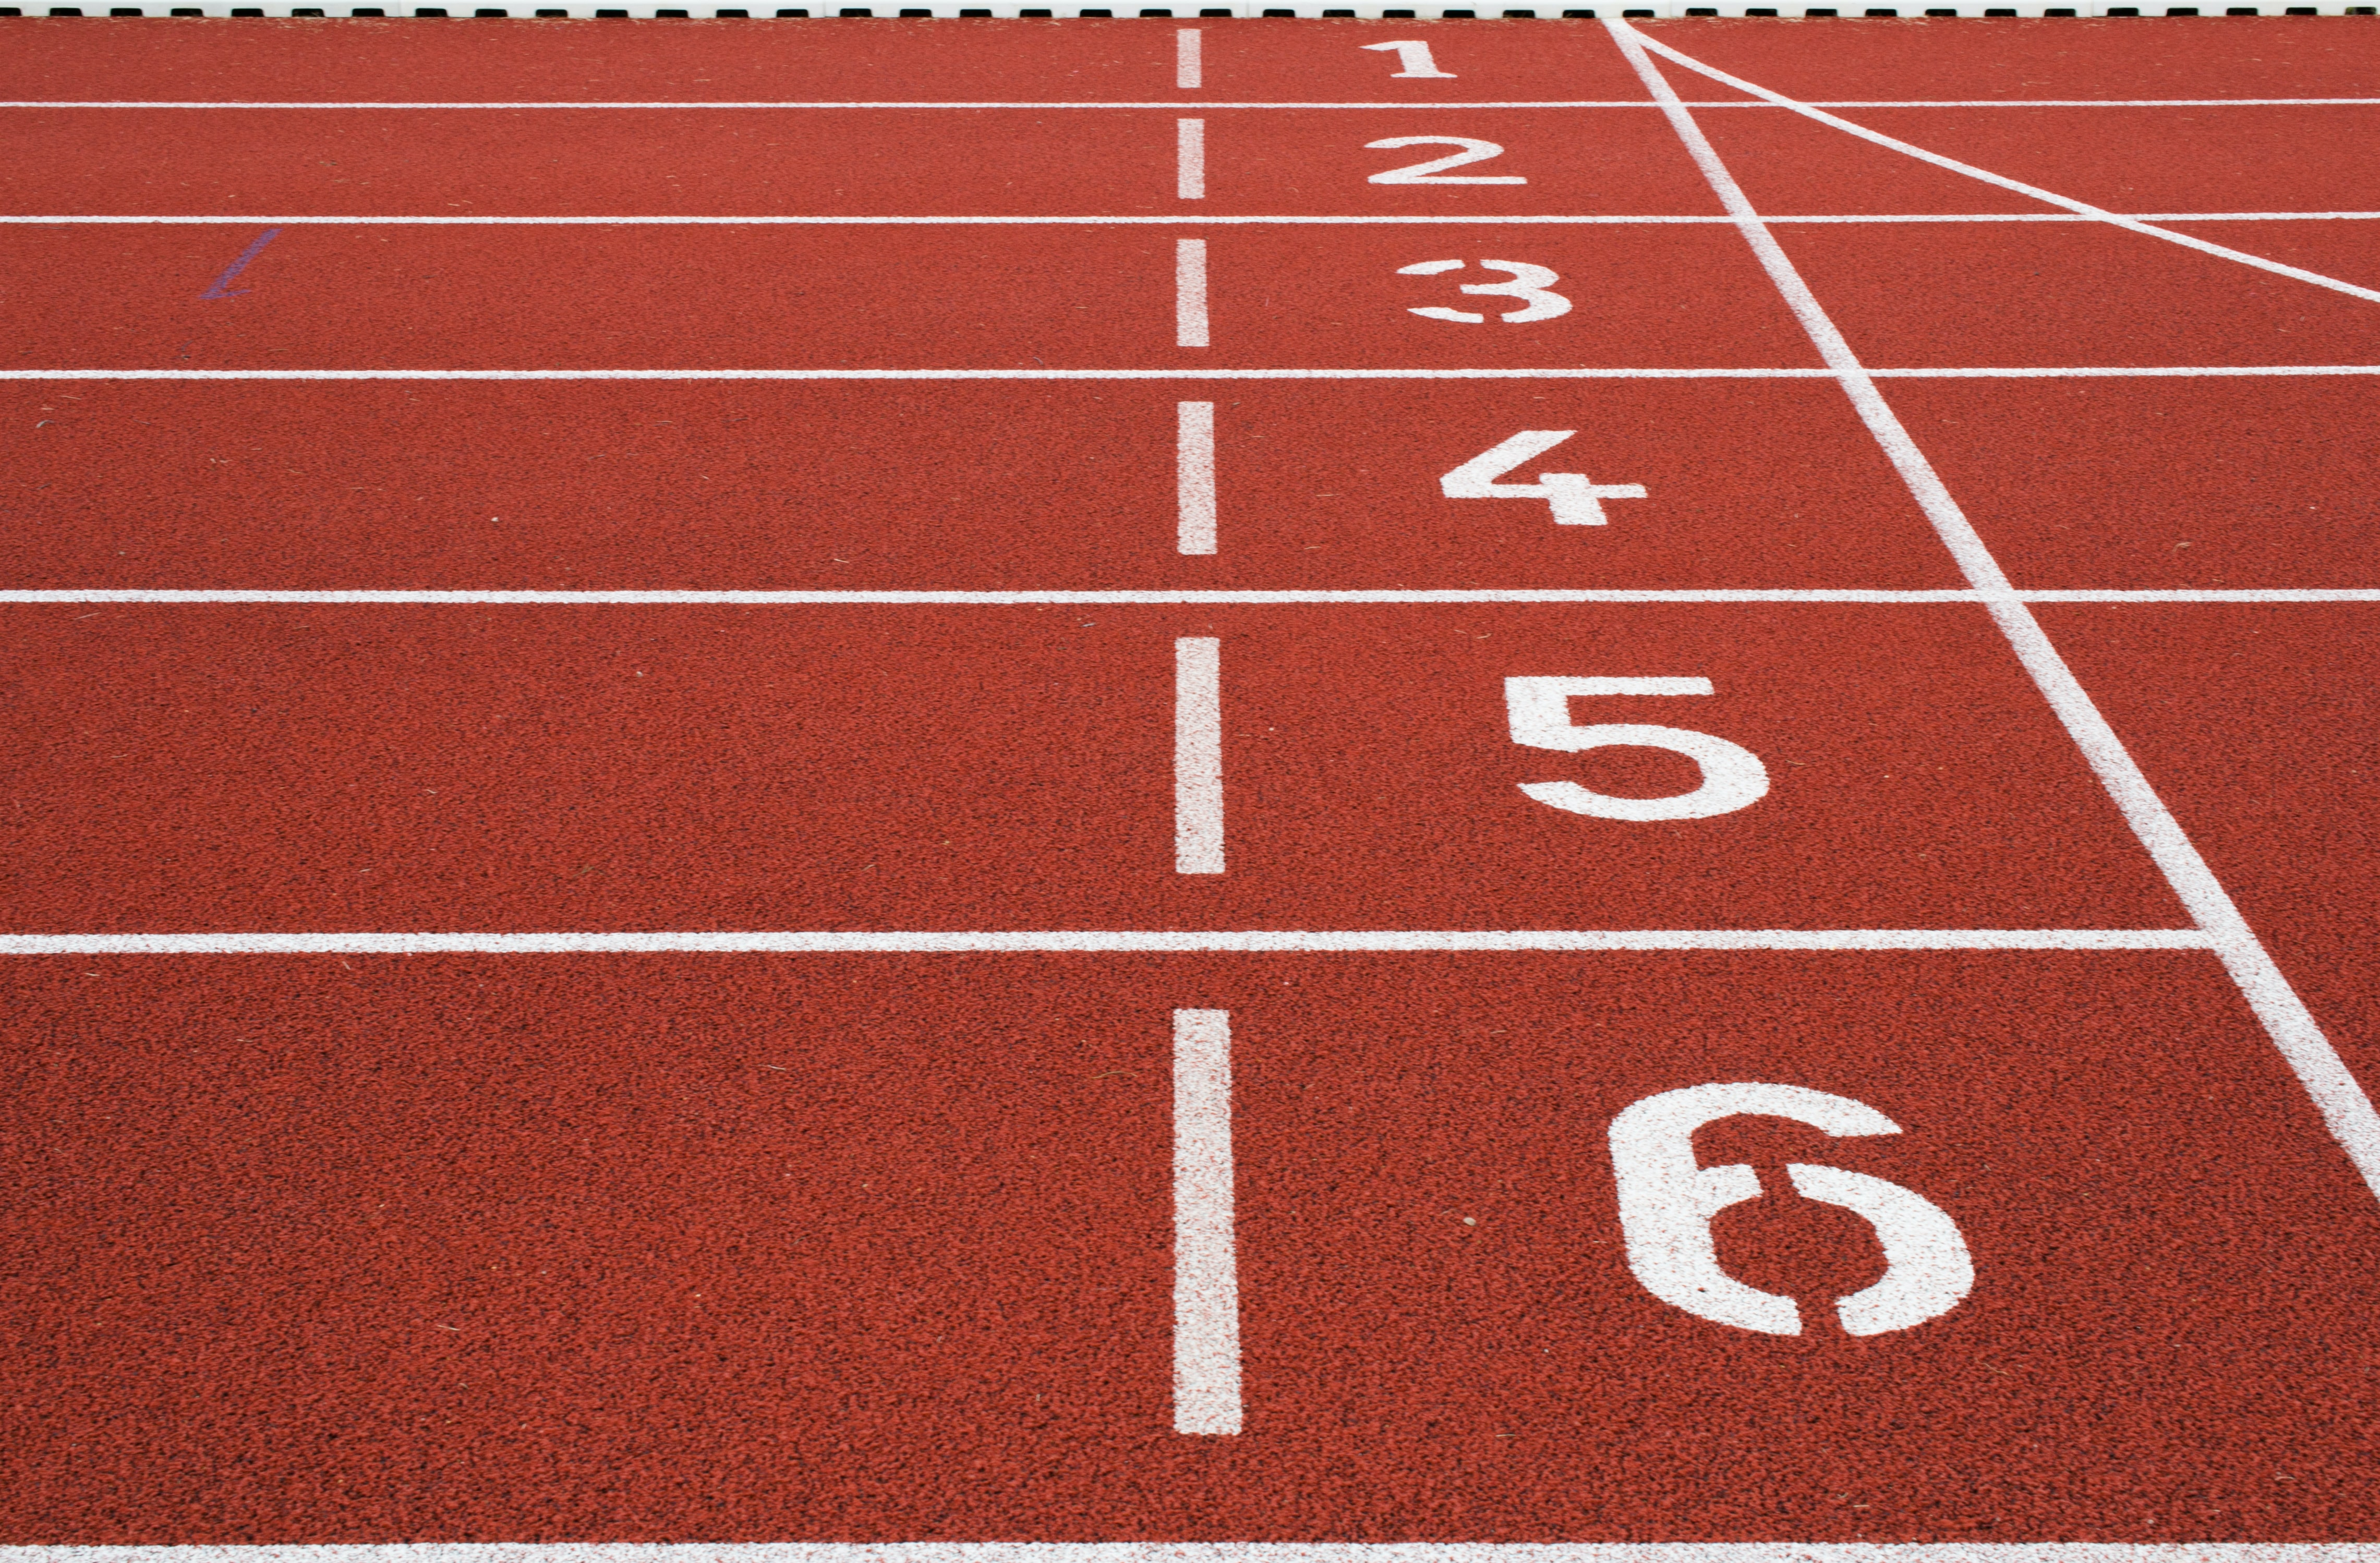 Numbers on the starting line on a red running track